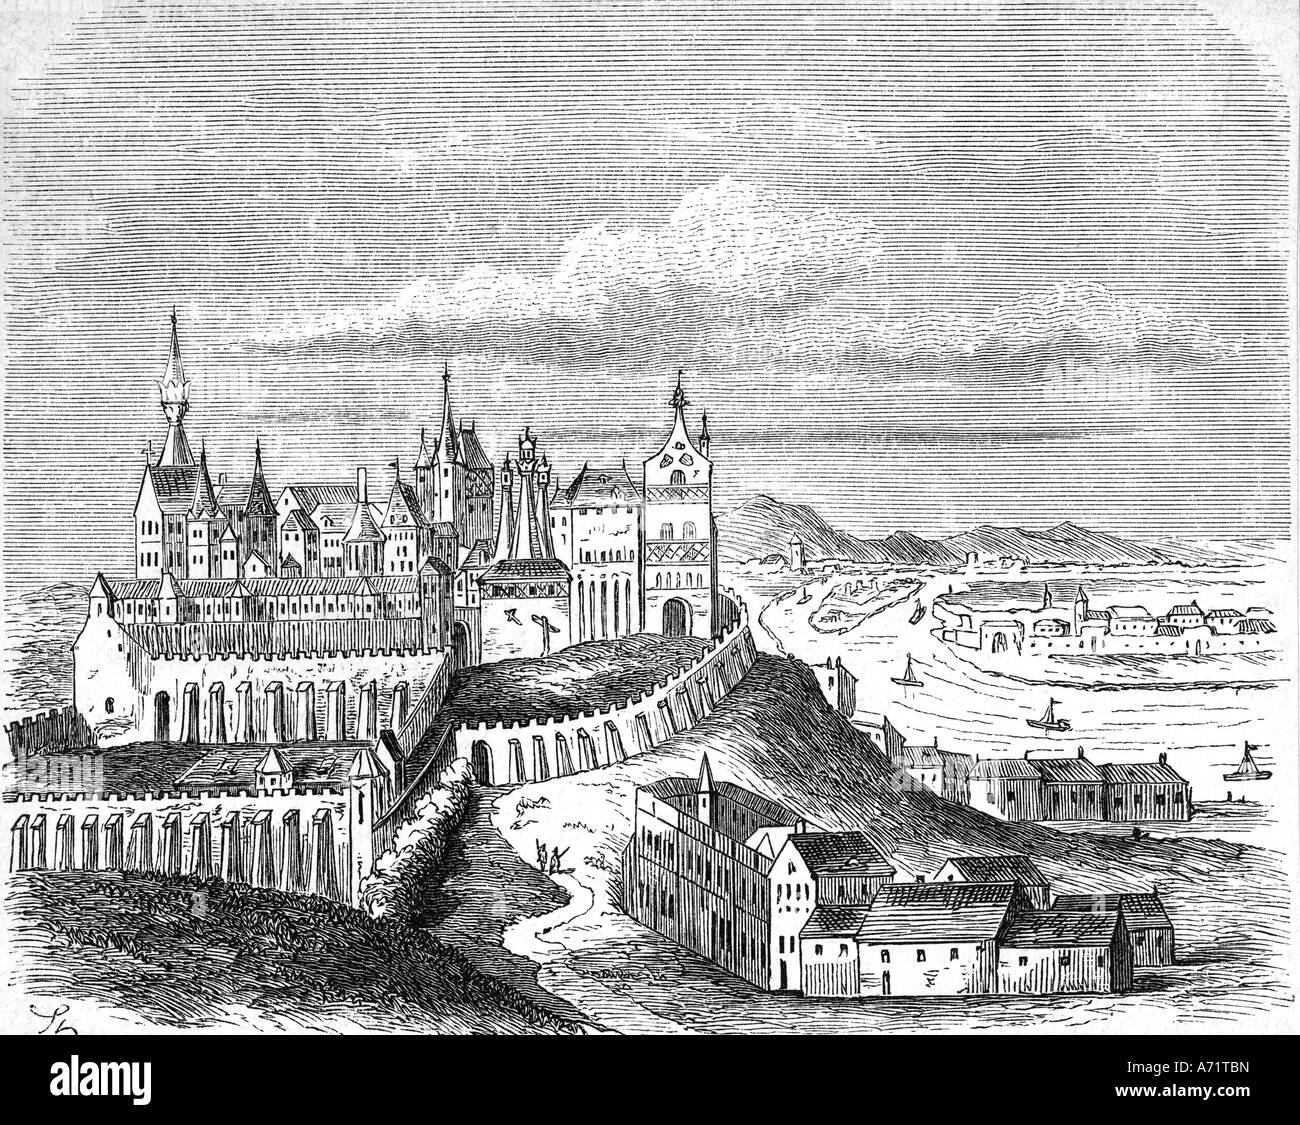 geography / travel, Hungary, Budapest, Buda, castle, late 16th century, exterior view, History painting, engraving - Stock Image